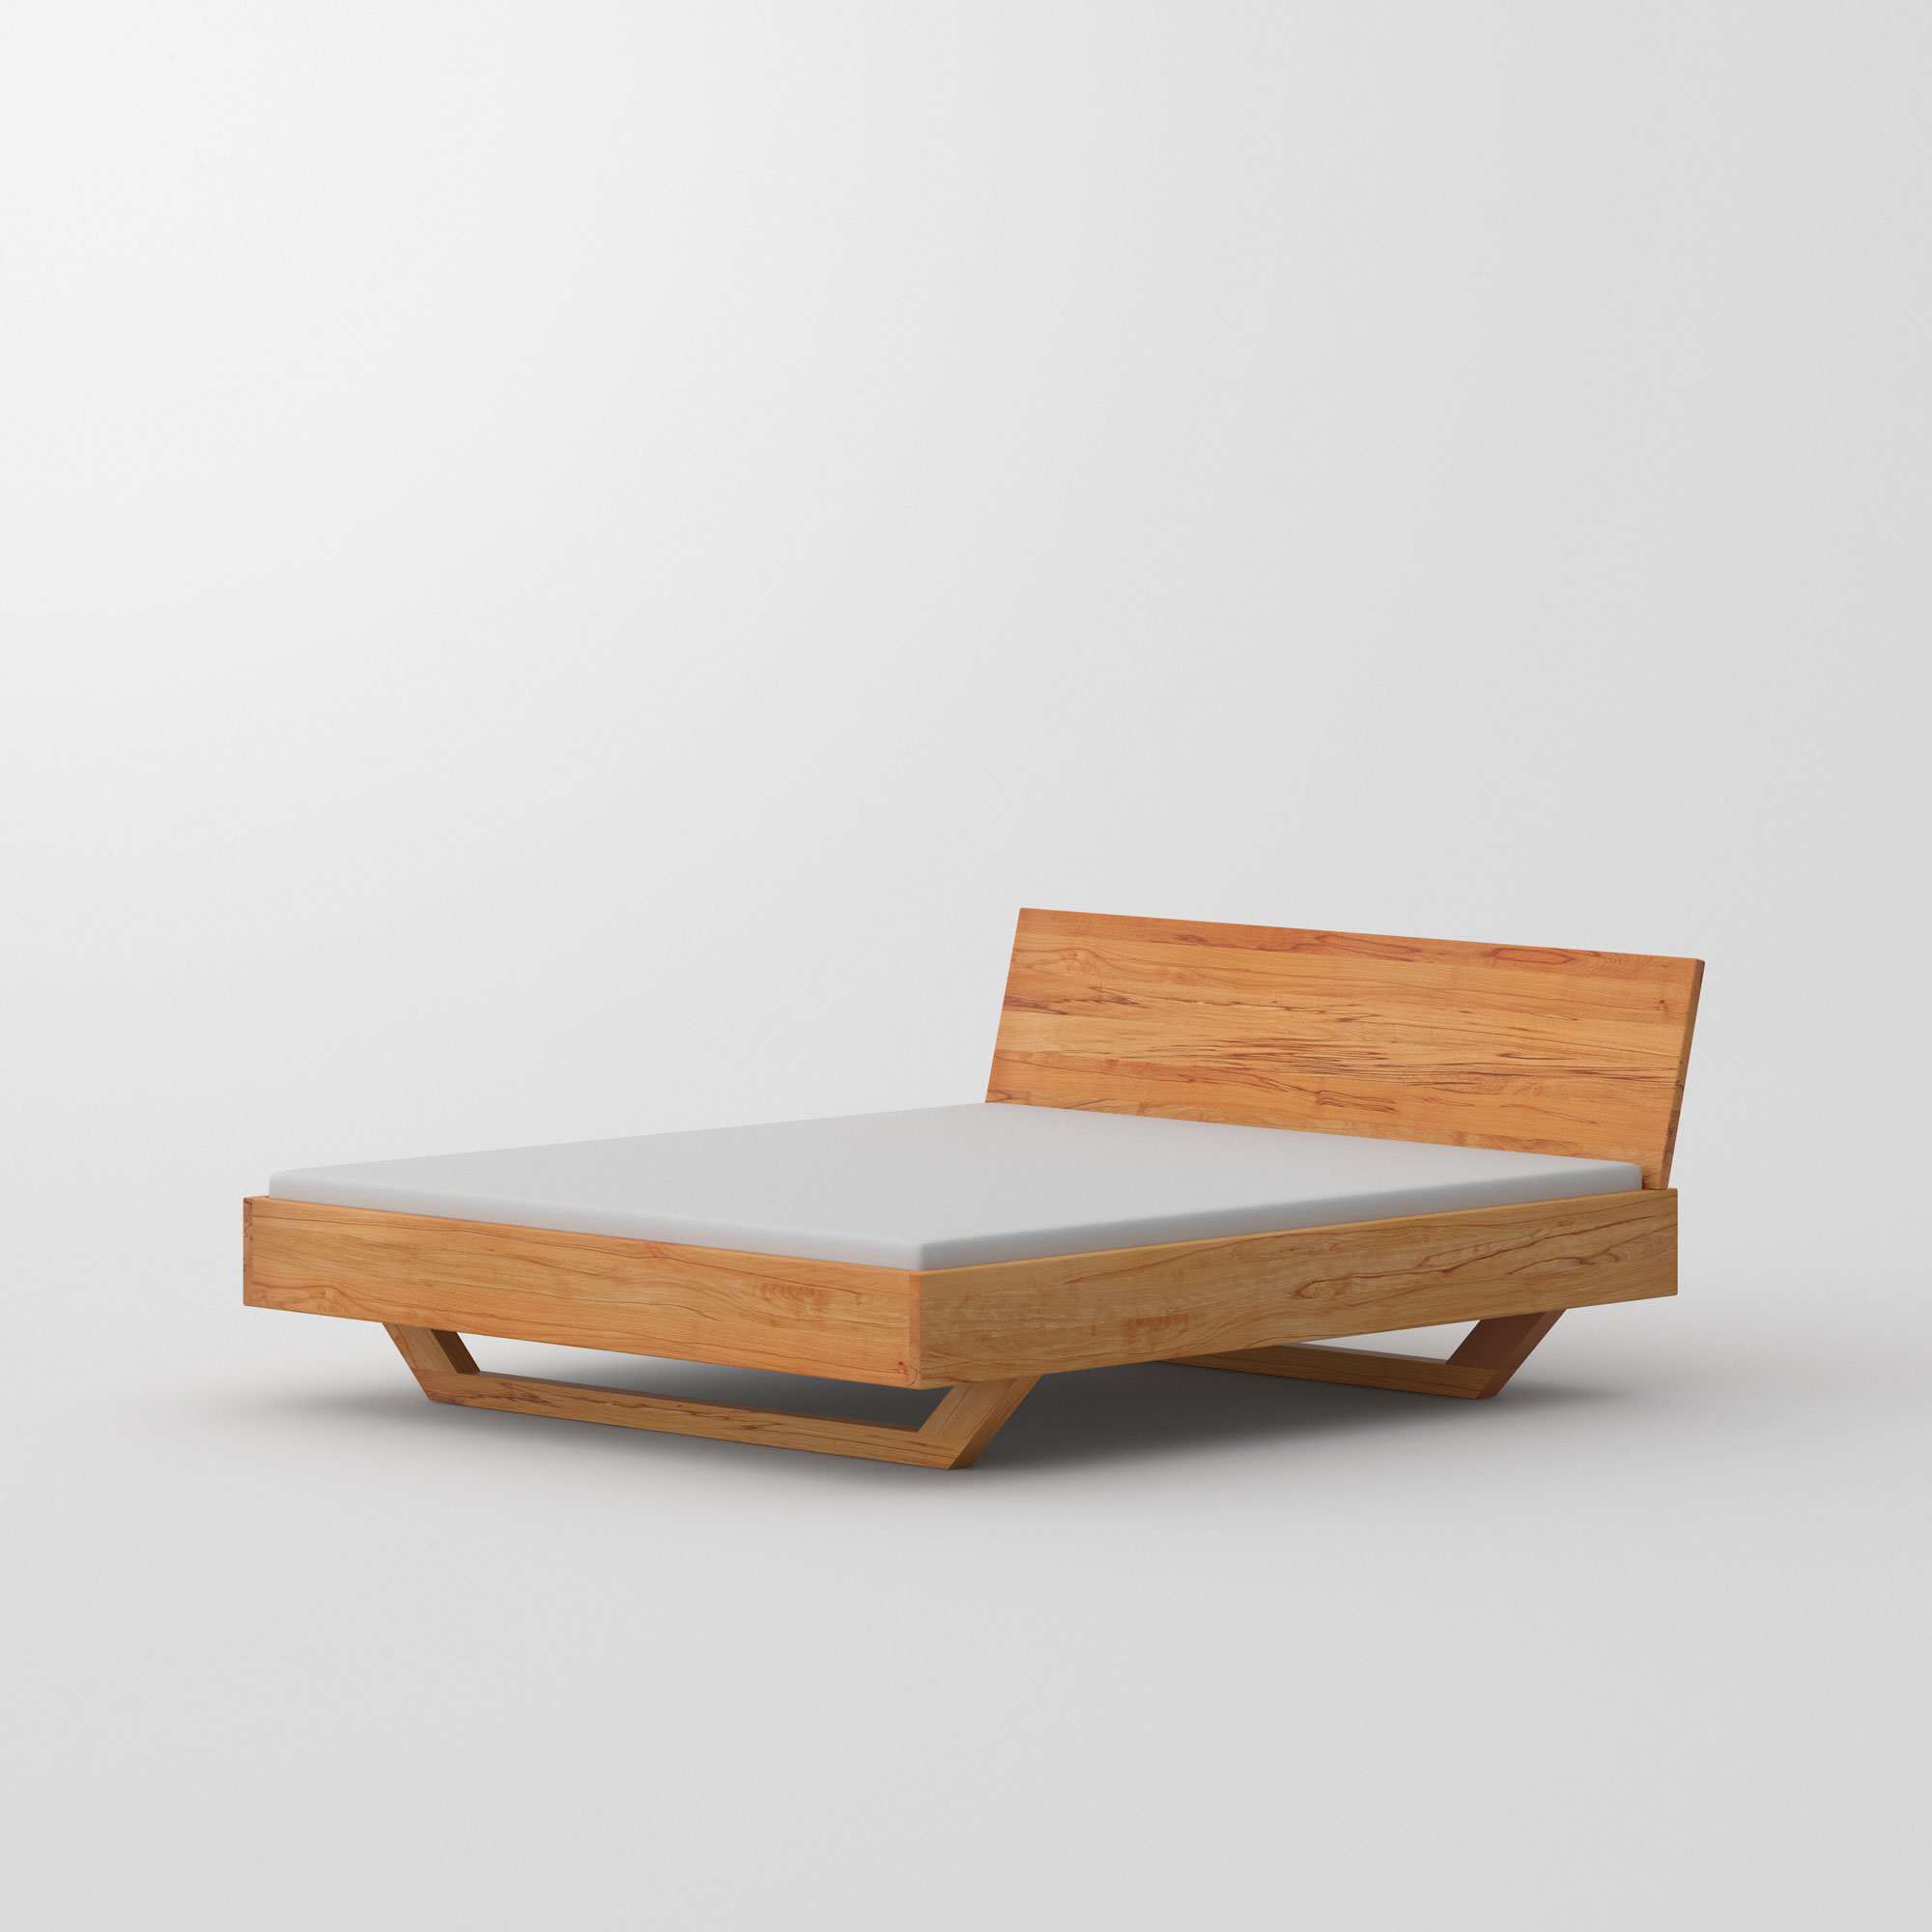 Solid Wooden Bed QUADRA SOFT custom made in solid wood by vitamin design